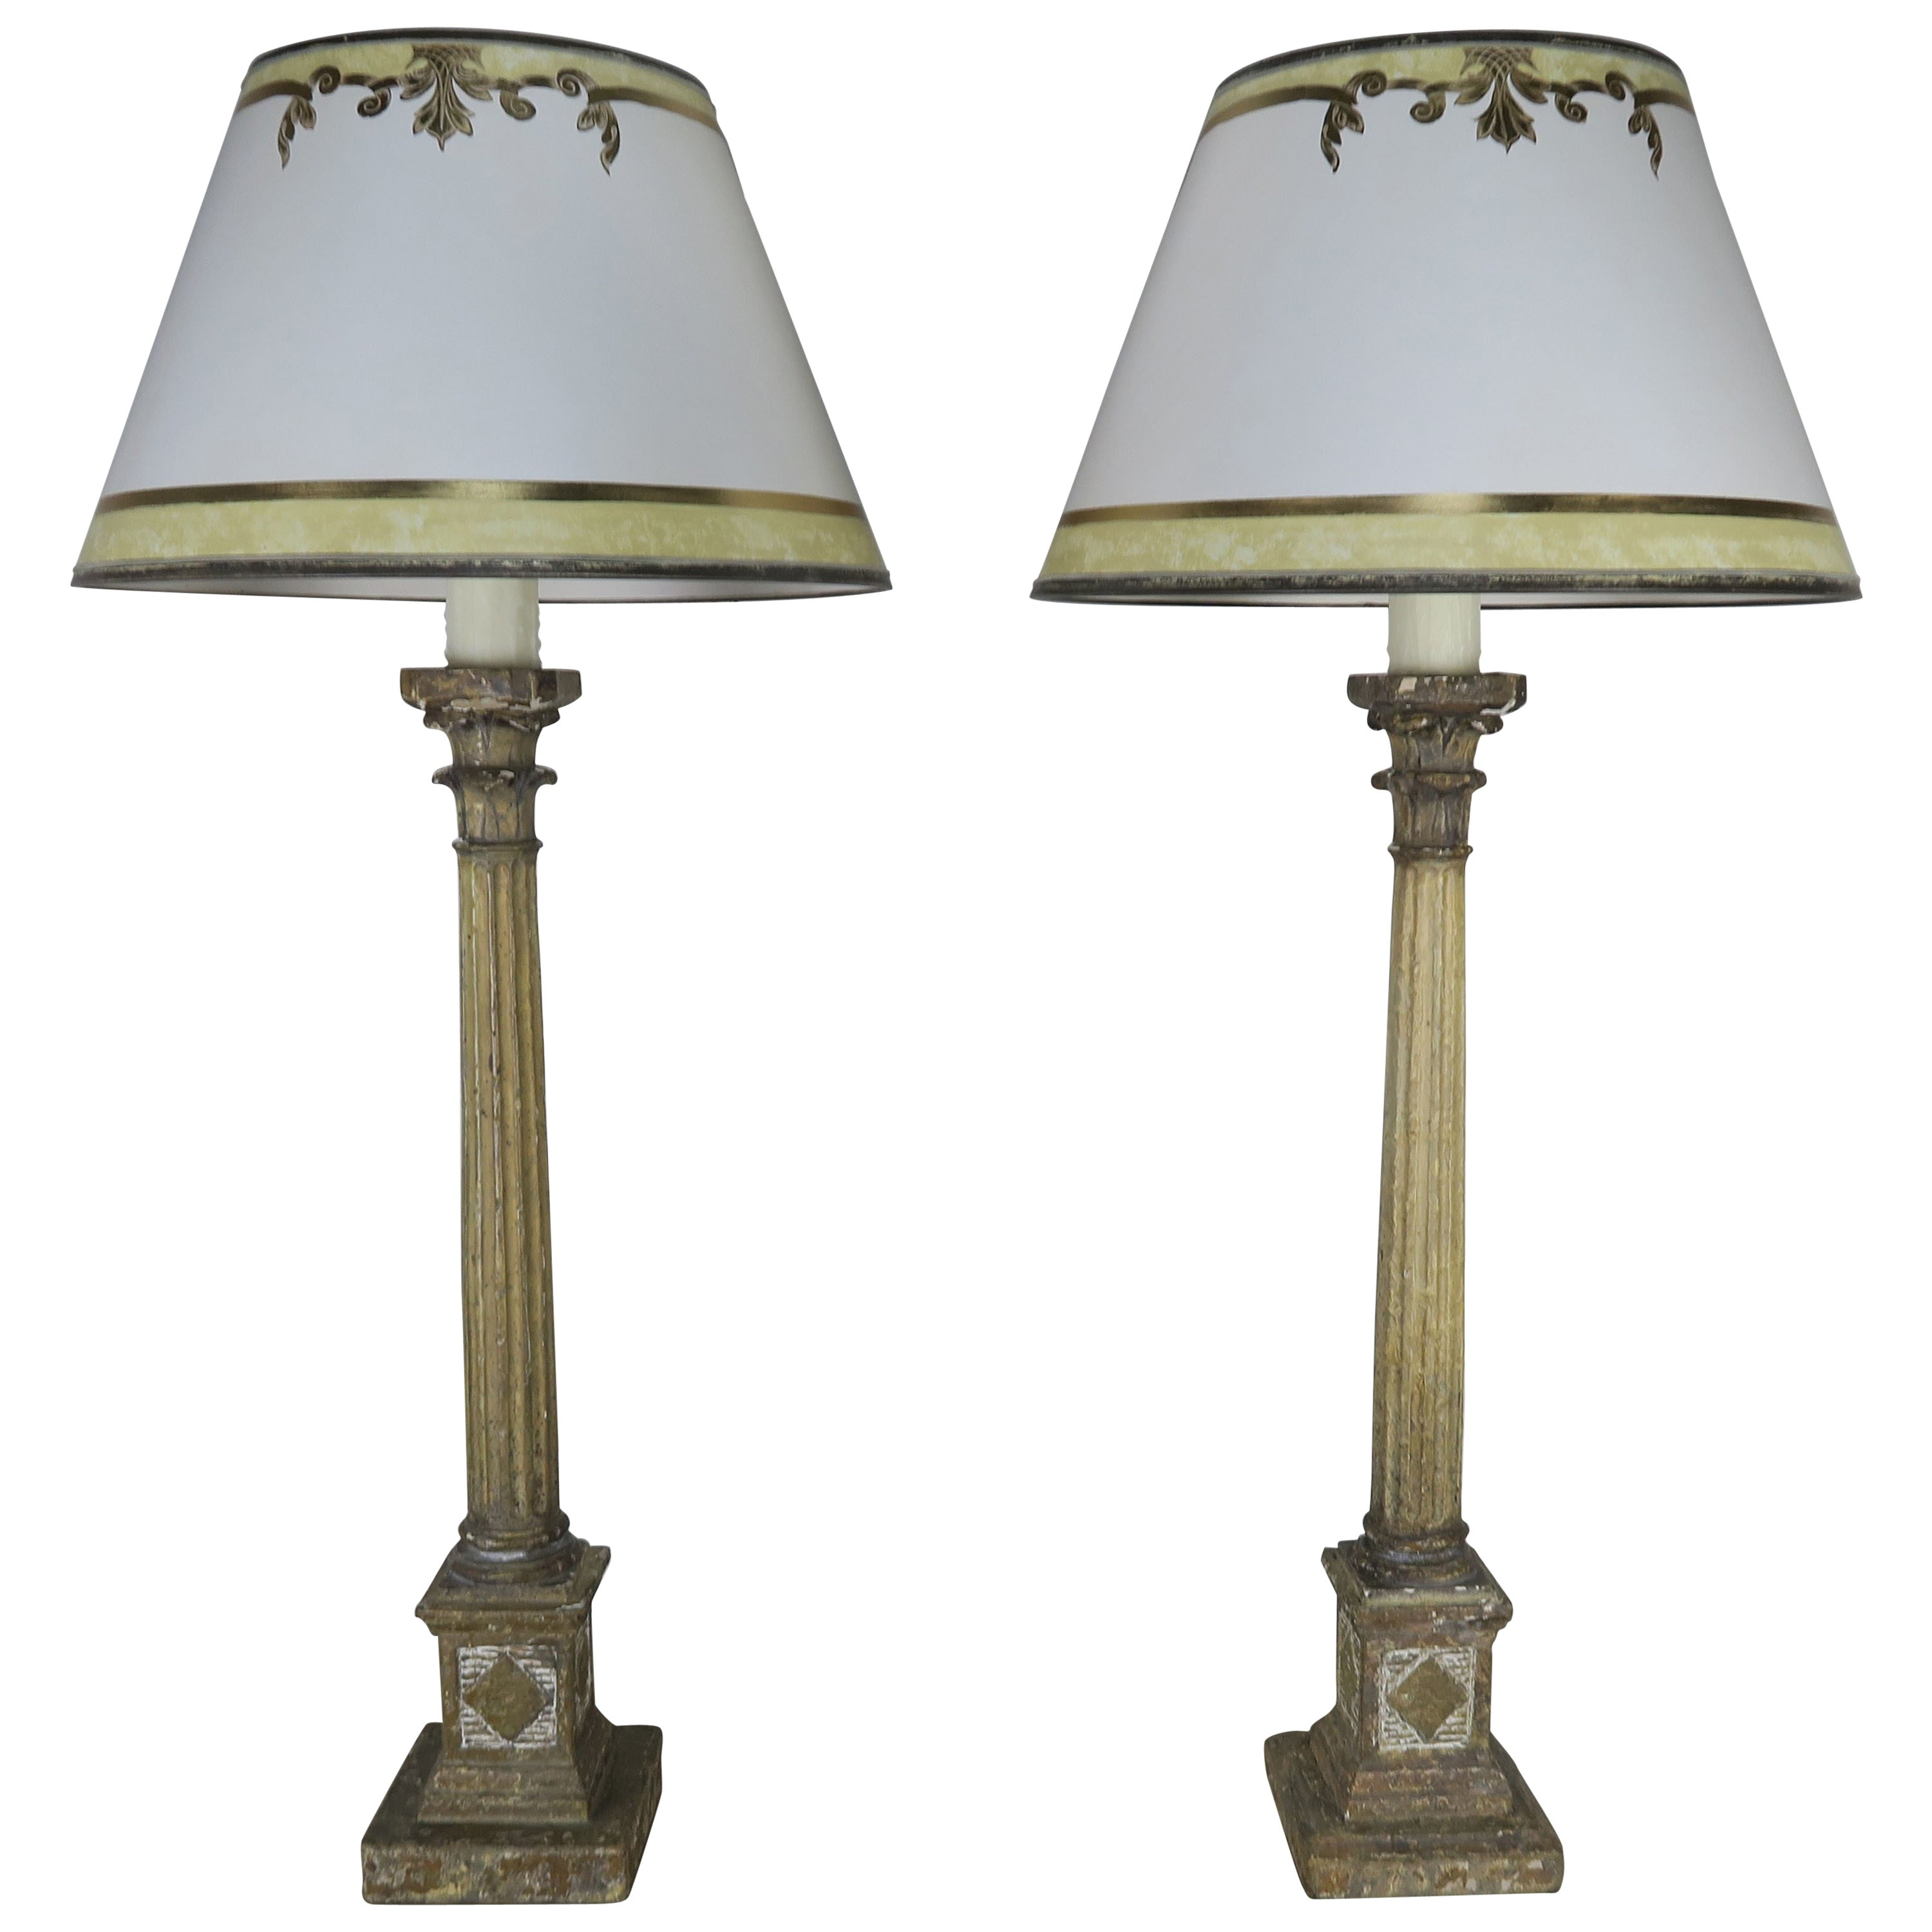 Pair of Painted Neoclassical Lamps with Parchment Shades